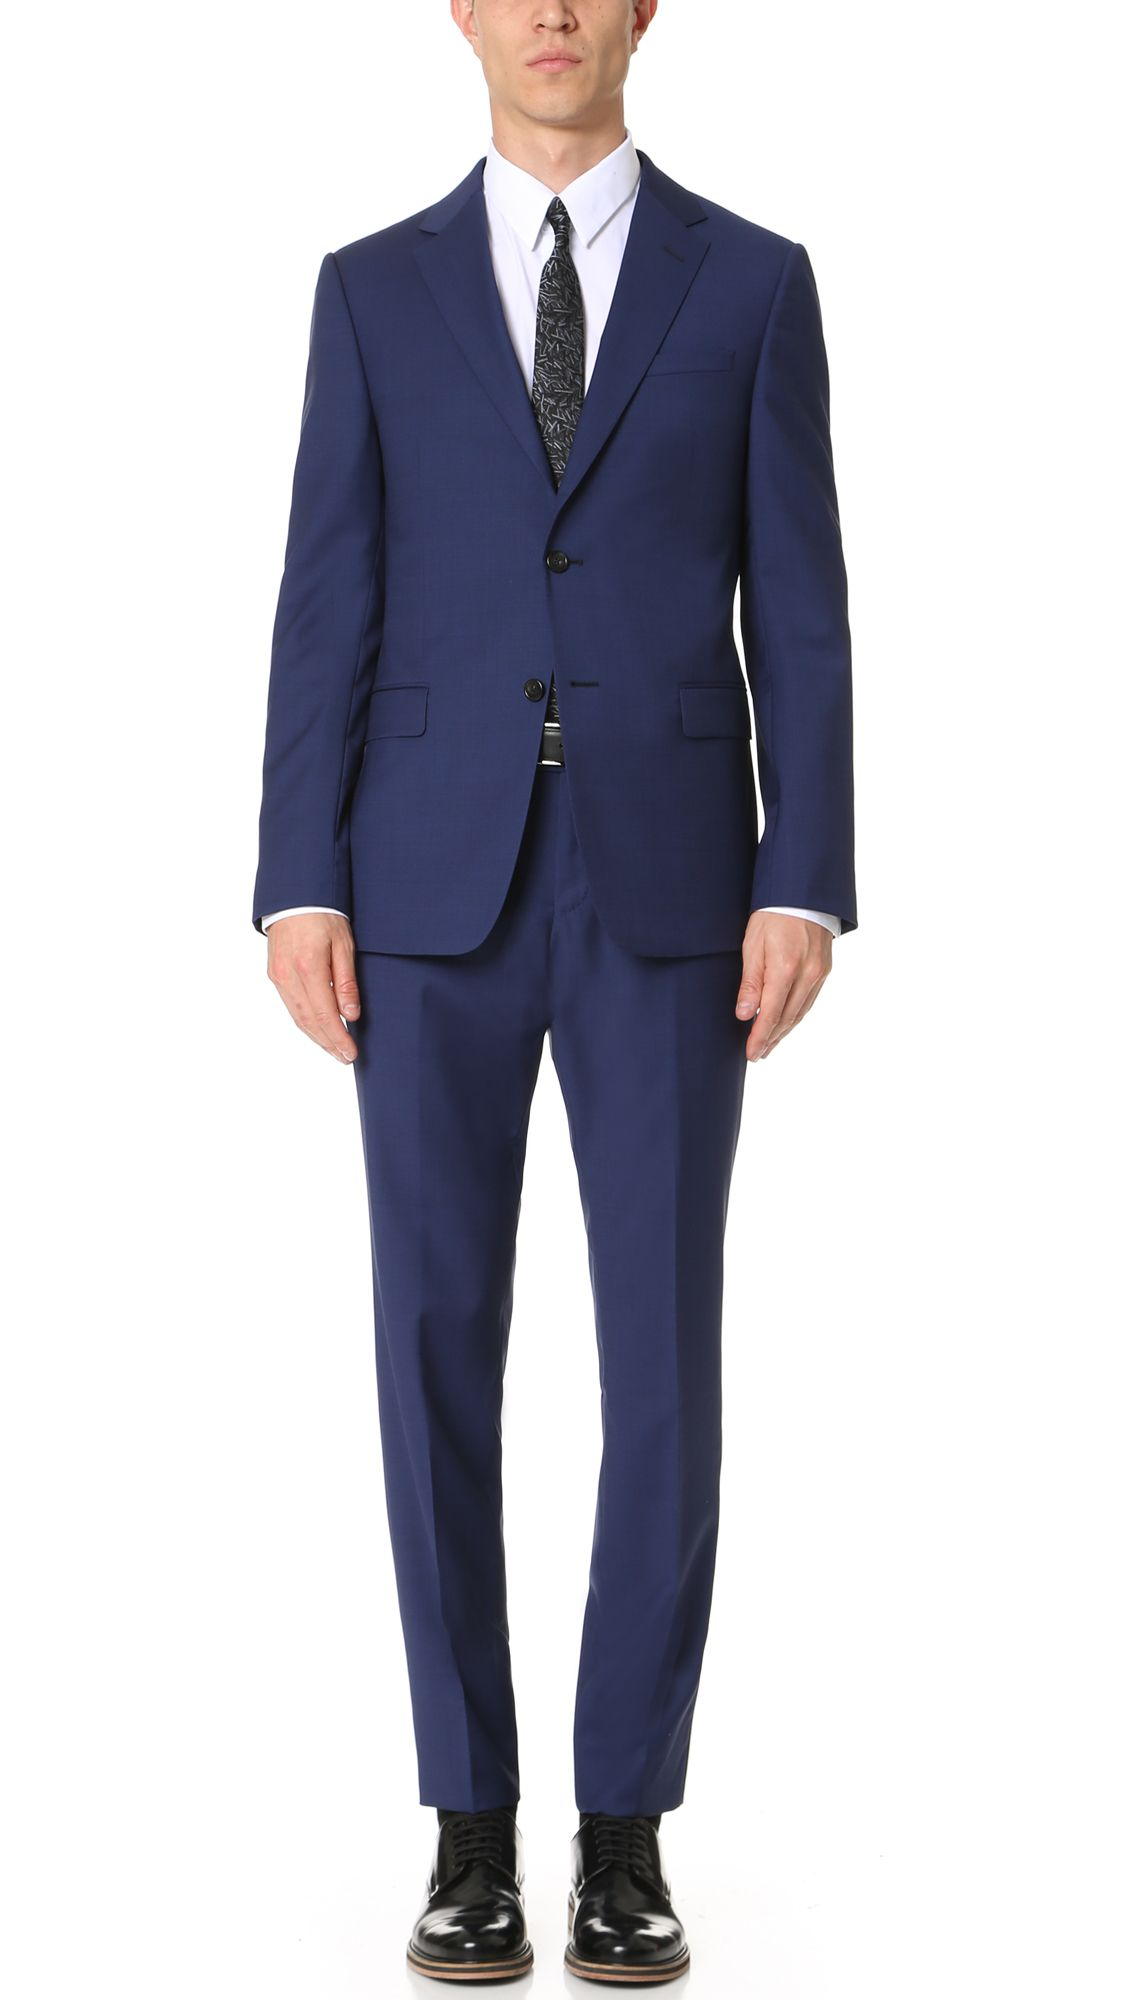 b4315191 Z ZEGNA Tropical Wool Drop 8 Suit. #zzegna #cloth #suit | Z Zegna ...